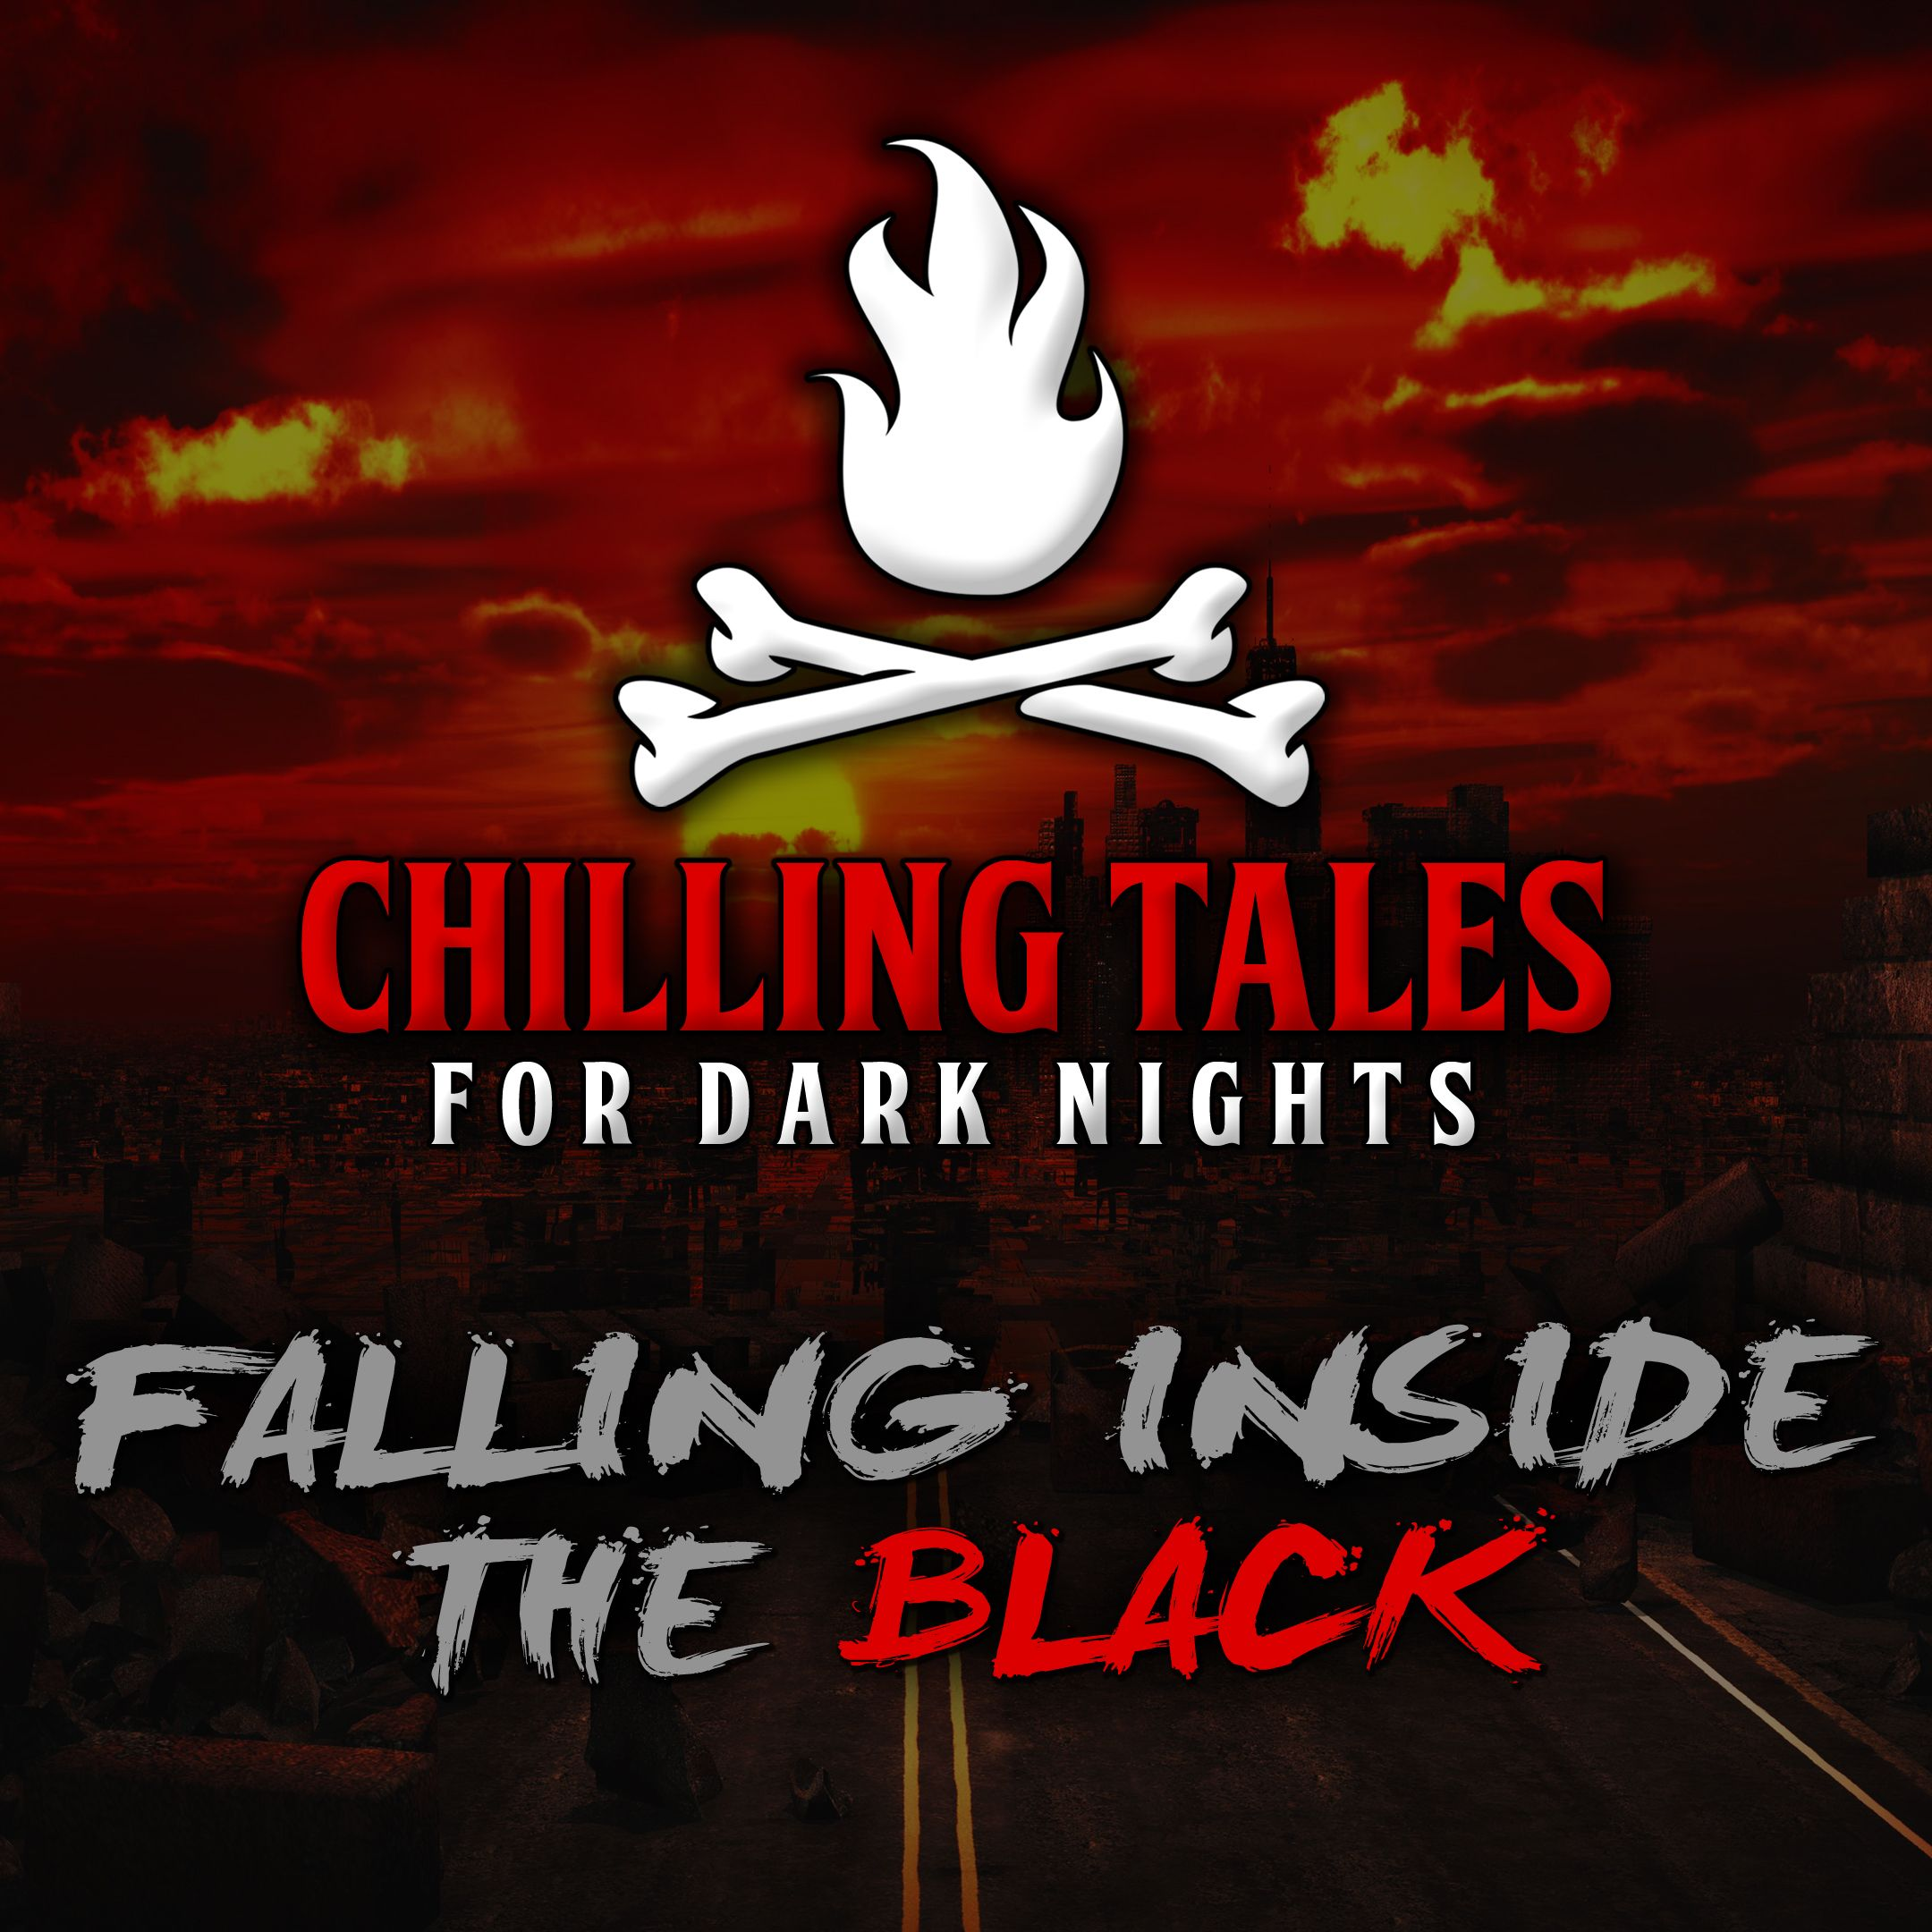 52: Falling Inside the Black – Chilling Tales for Dark Nights